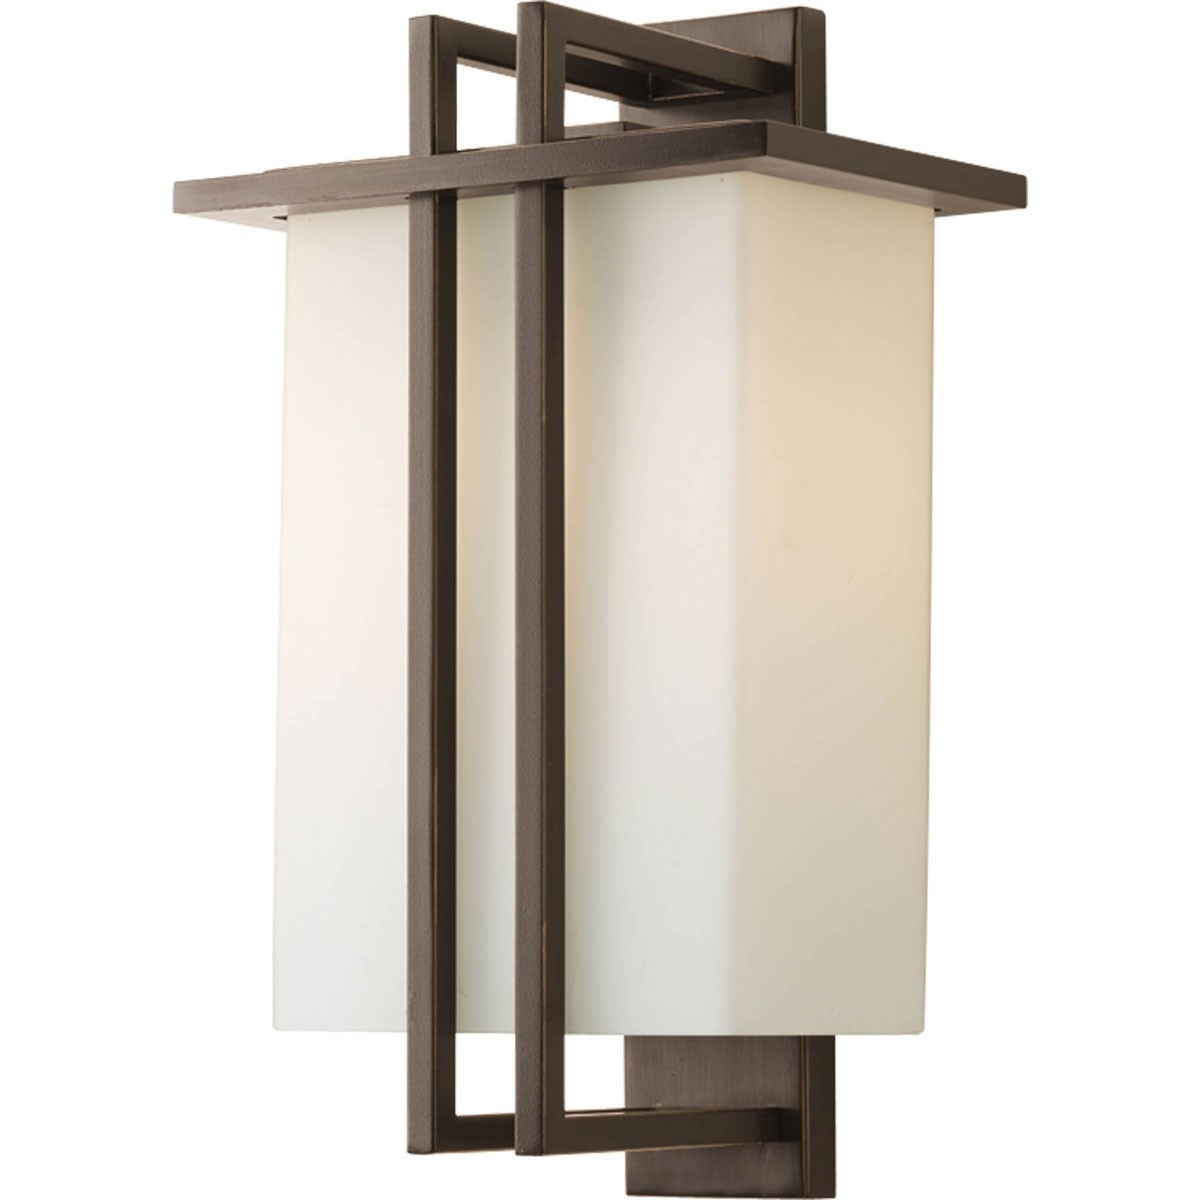 Latest Outdoor Wall Lantern Lights In One Lamp Outdoor Medium Wall Lantern Light Fixture – Progress (Gallery 16 of 20)